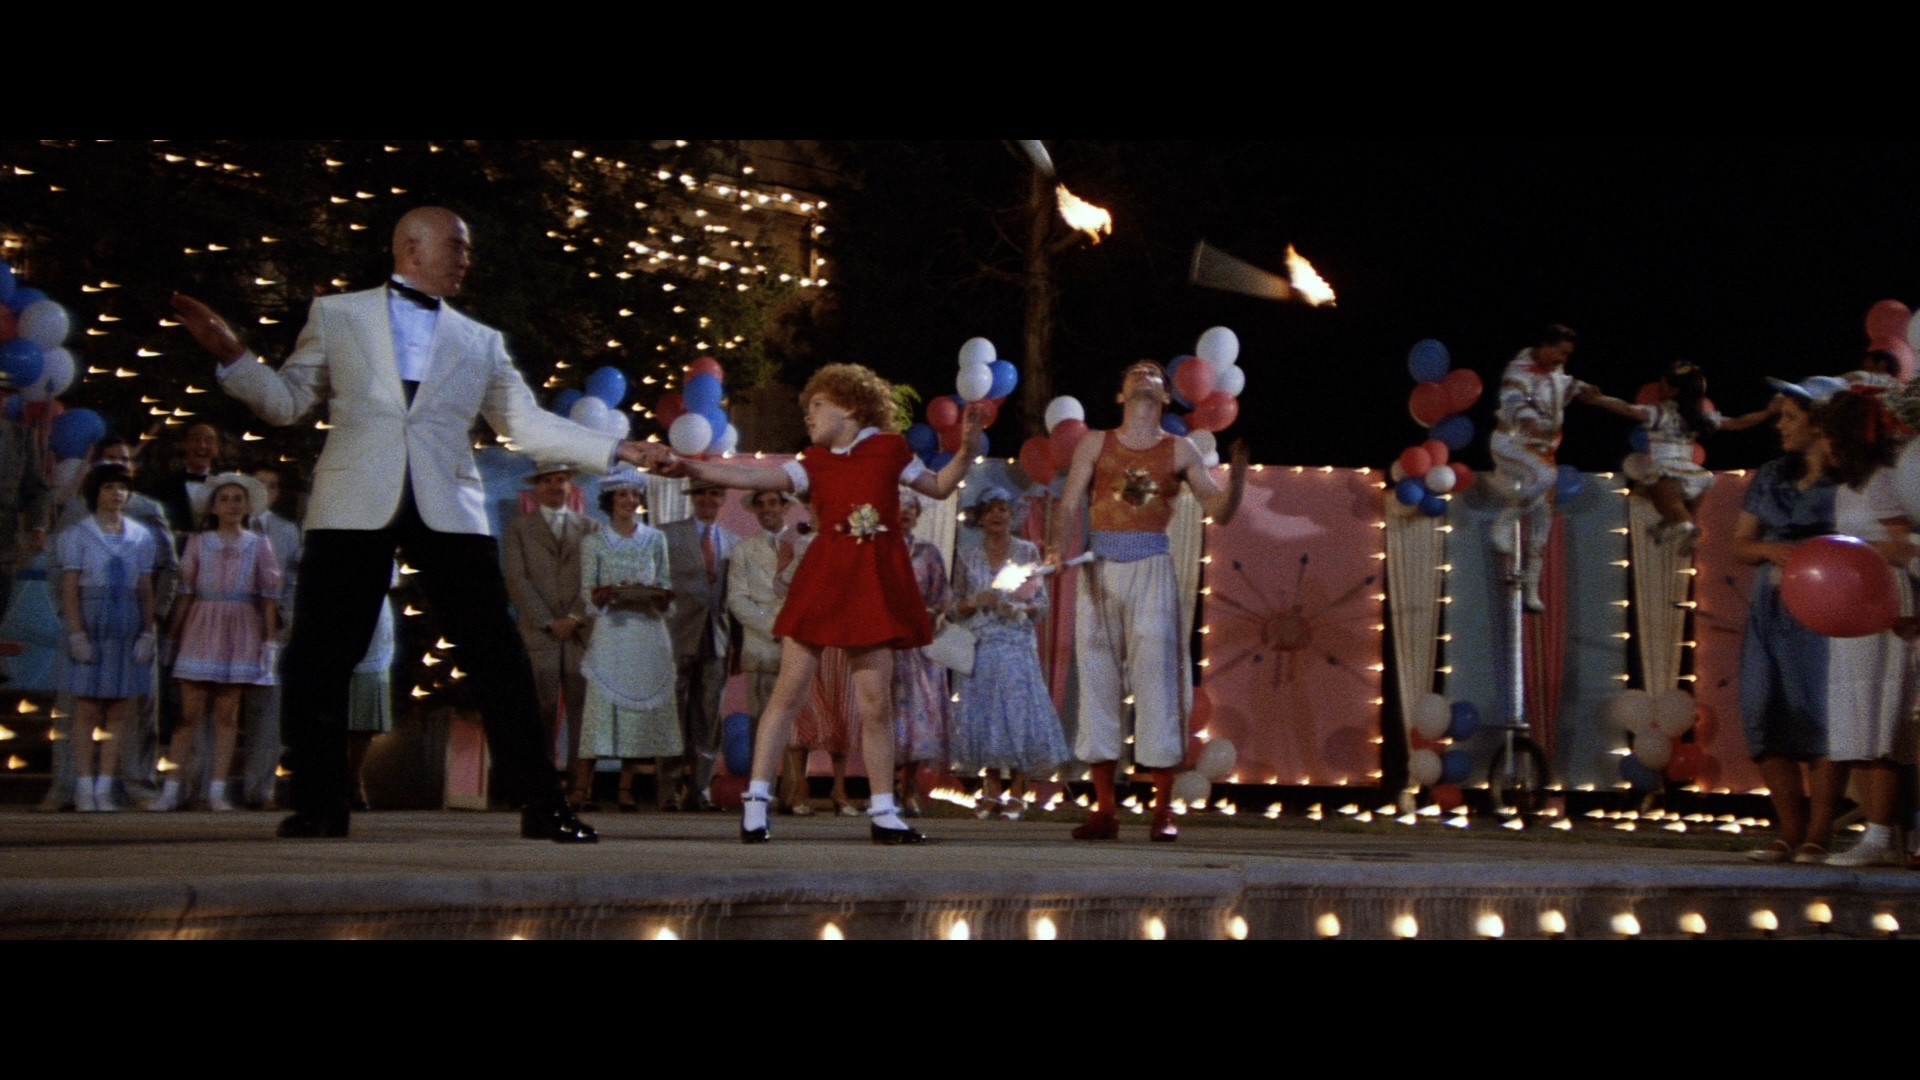 ANNIE (1982) - Daddy Warbucks' (Albert Finney) Tuxedo Jacket - Image 10 of 12